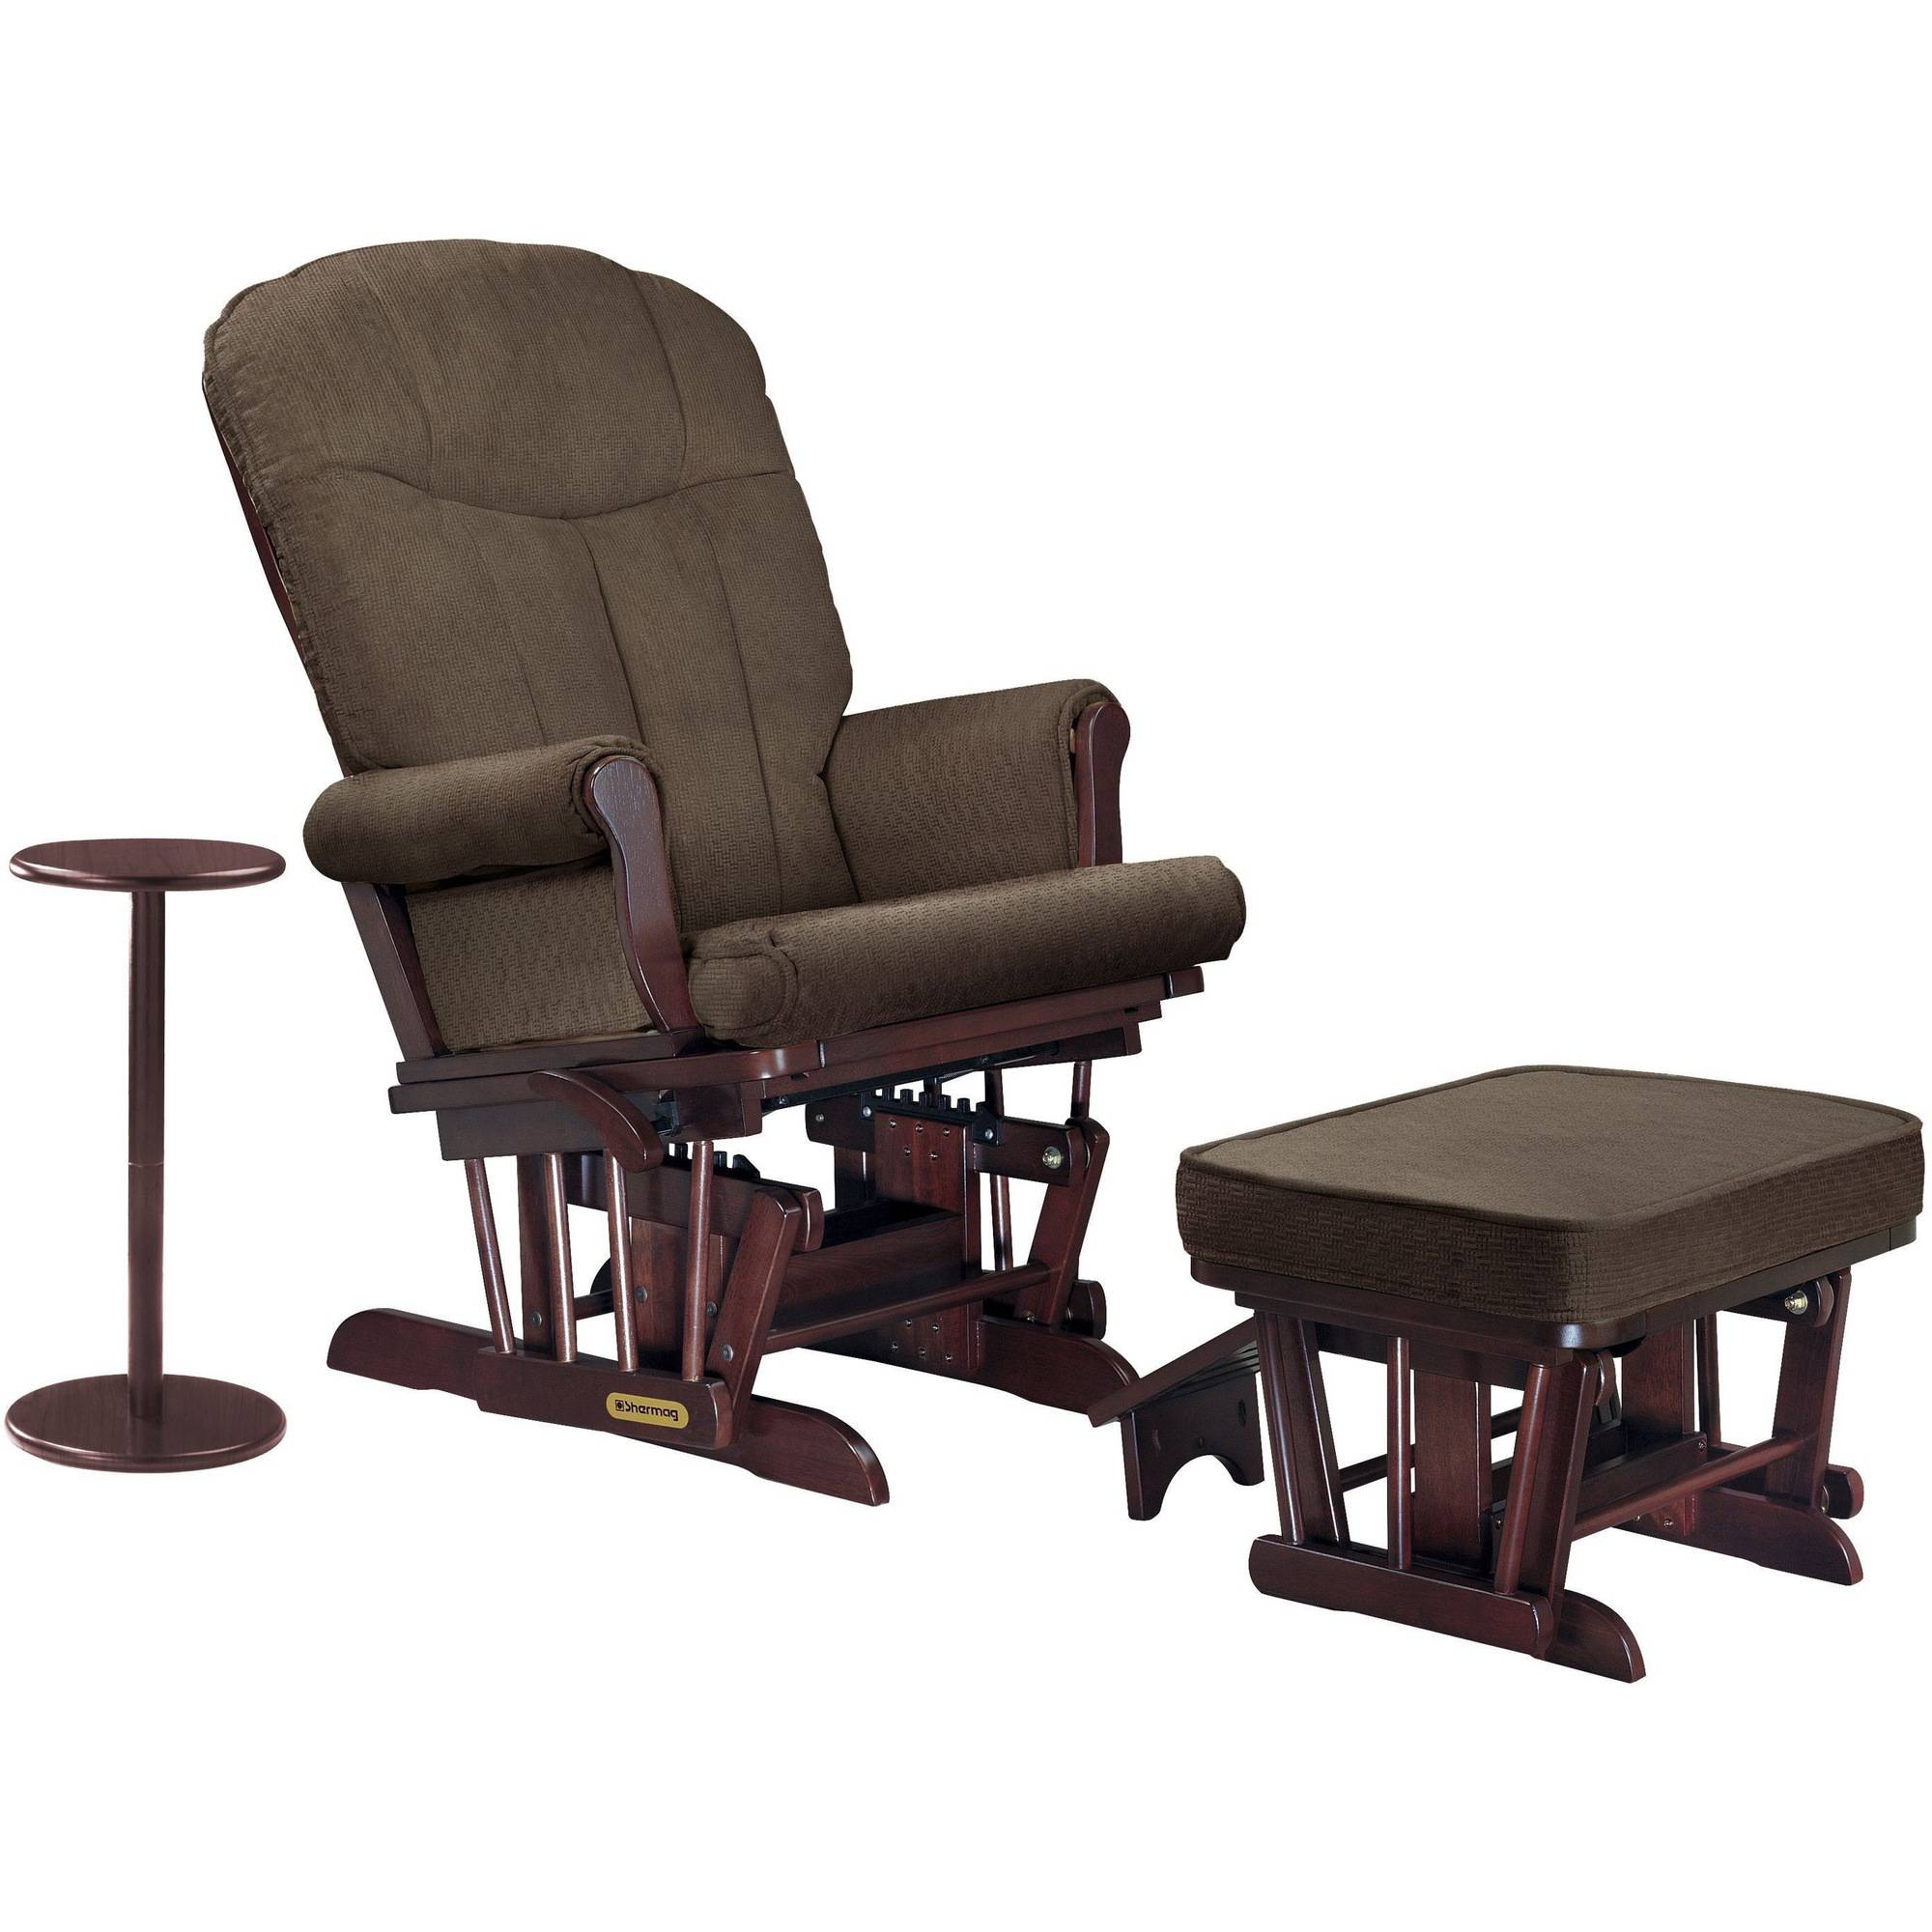 Shermag Combo Glider/Ottoman/Coffee Table, Cherry/Station Mocha